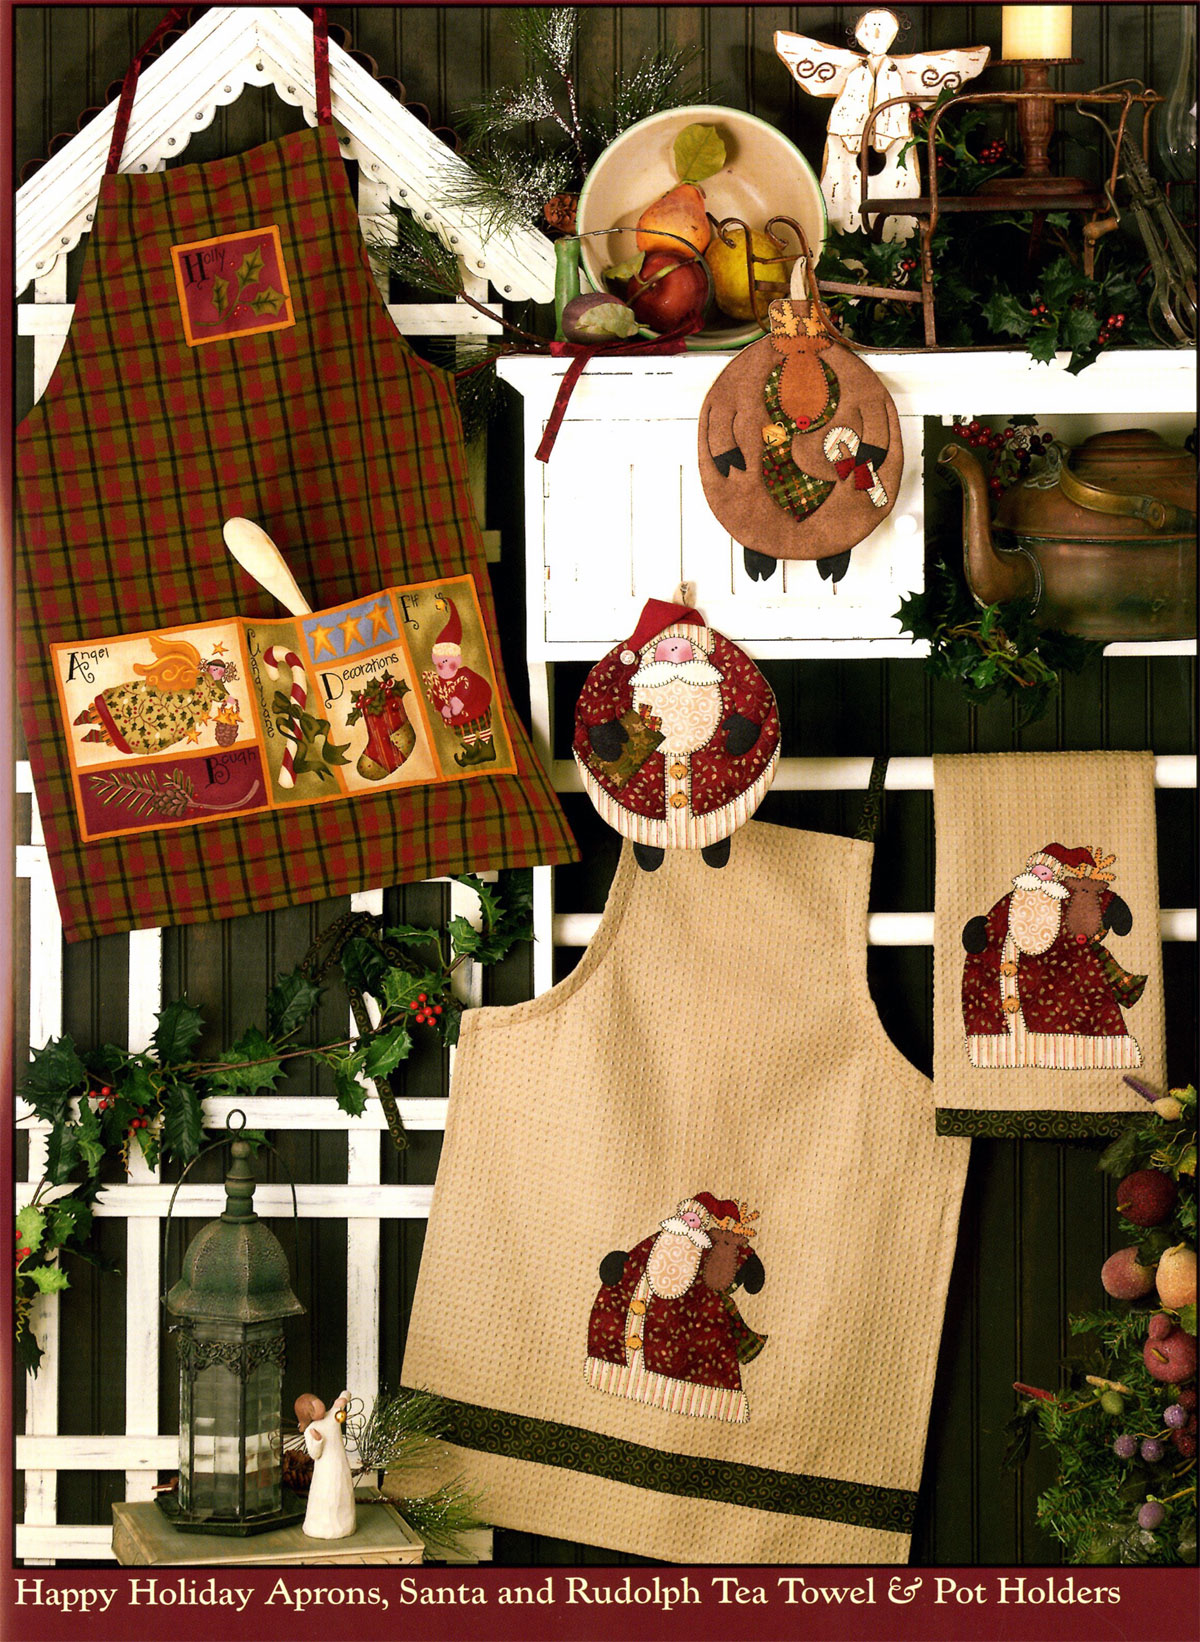 Happy-Holidays-to-You-sewing-pattern-book-Art-To-Heart-6